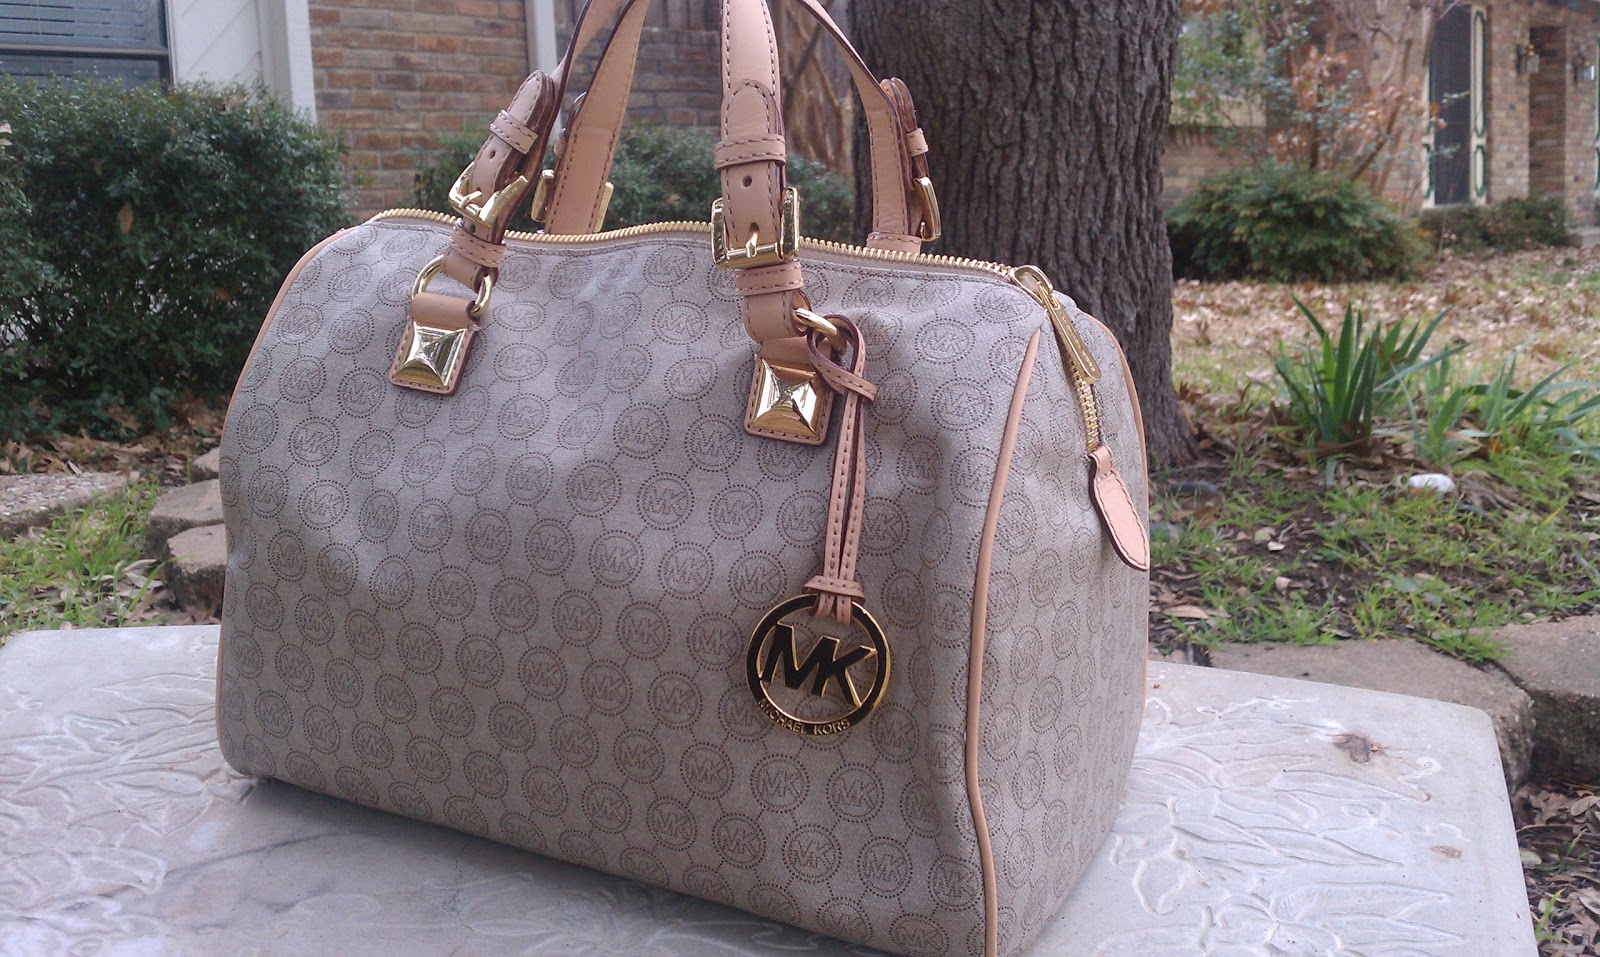 Handbag Review Michael Kors Grayson Large Monogram Satchel Daydreaming Maven